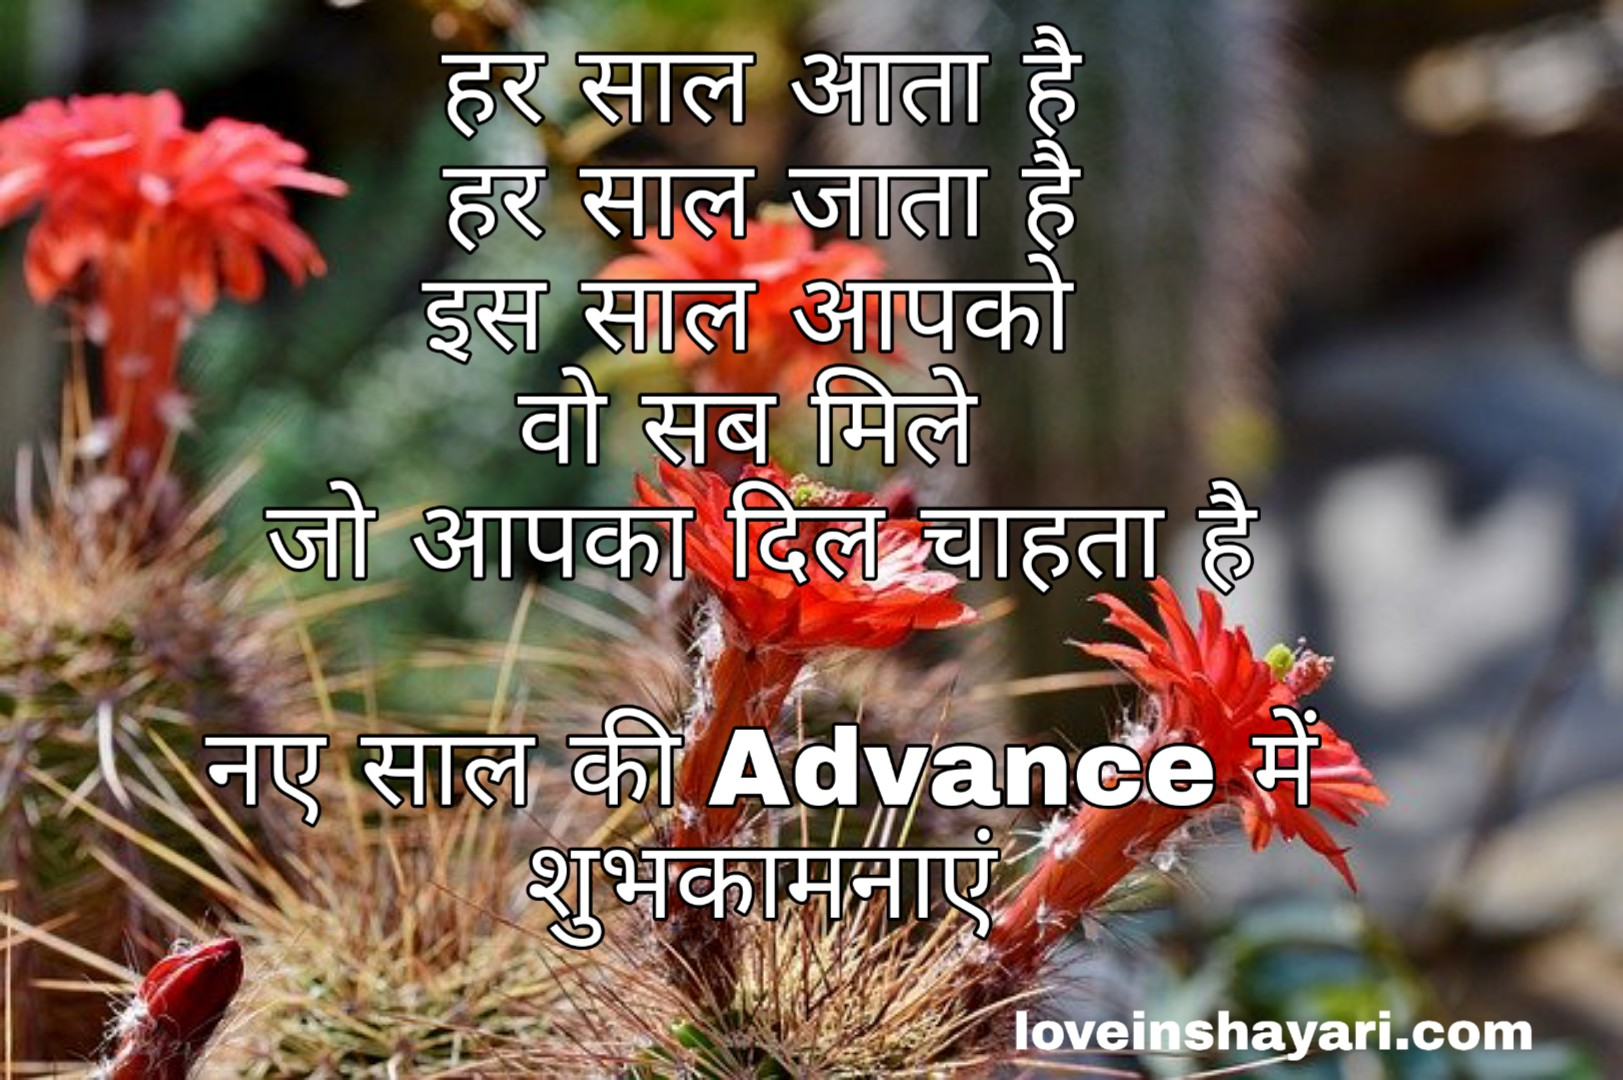 Photo of Advance happy new year 2020 image shayari and sms